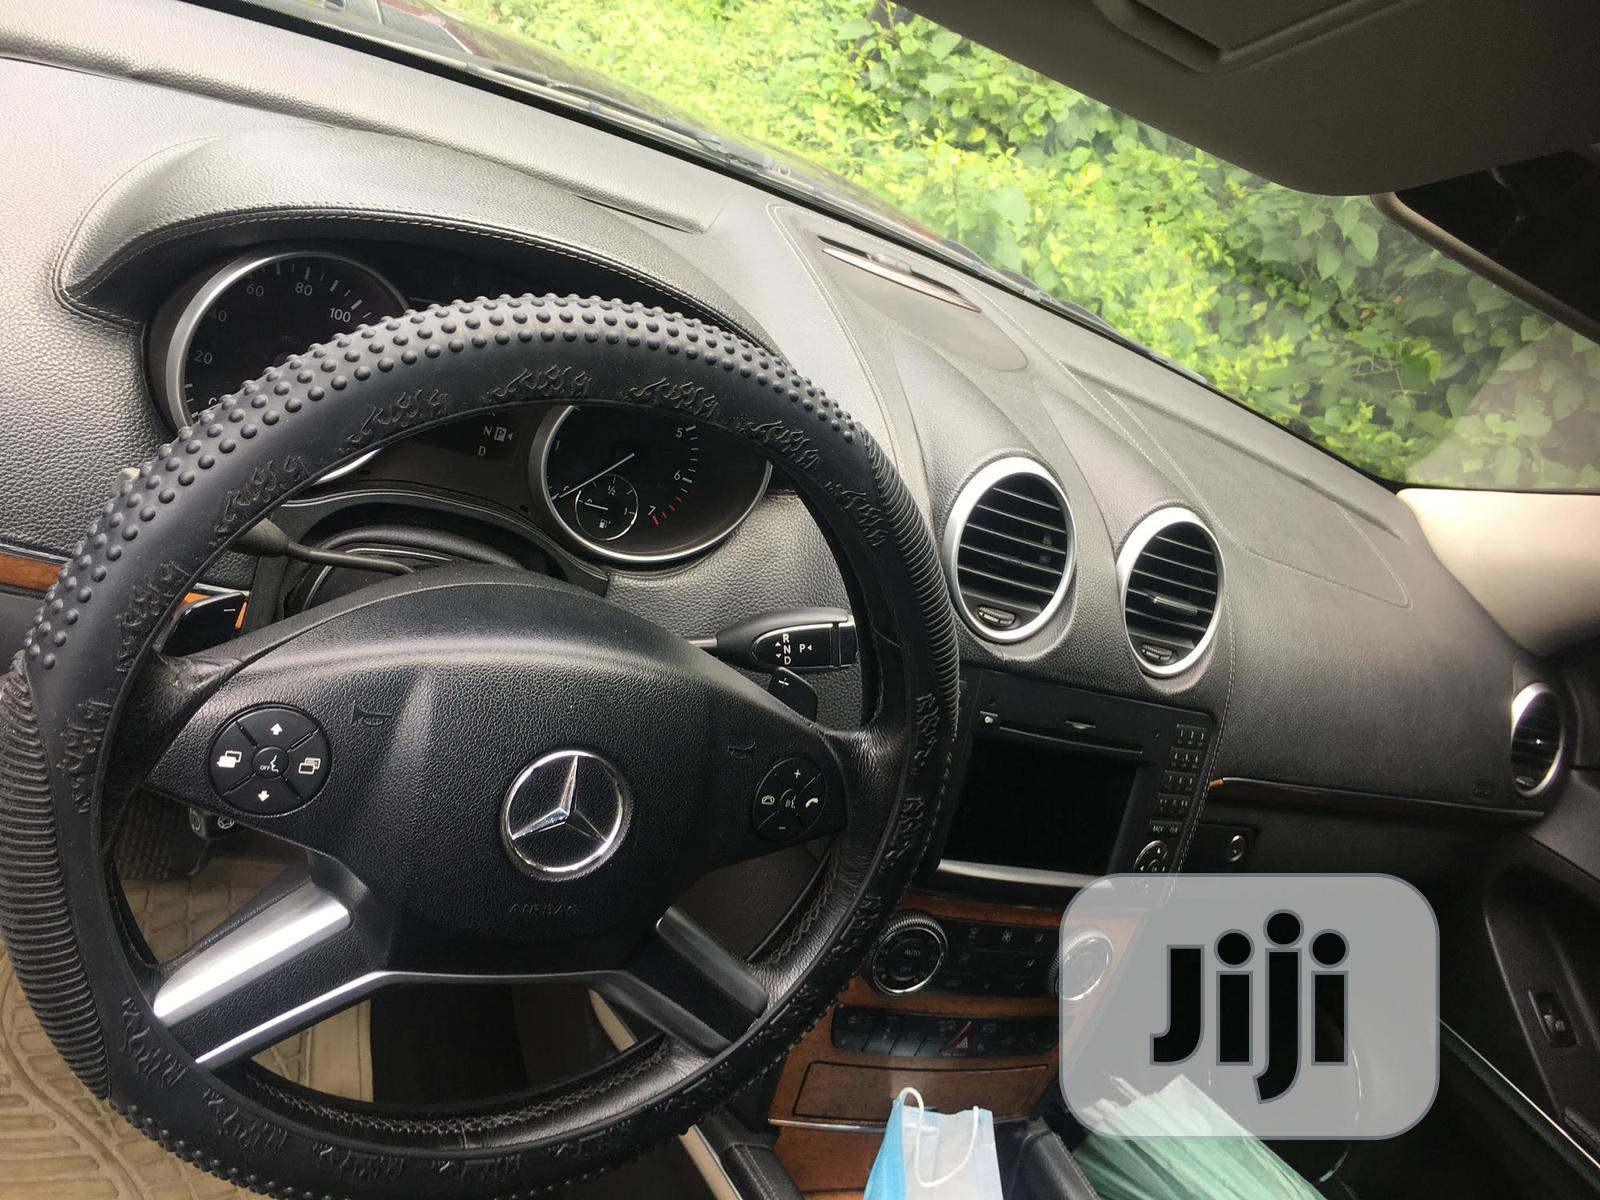 Mercedes-Benz GL Class 2009 GL 550 | Cars for sale in Ajah, Lagos State, Nigeria